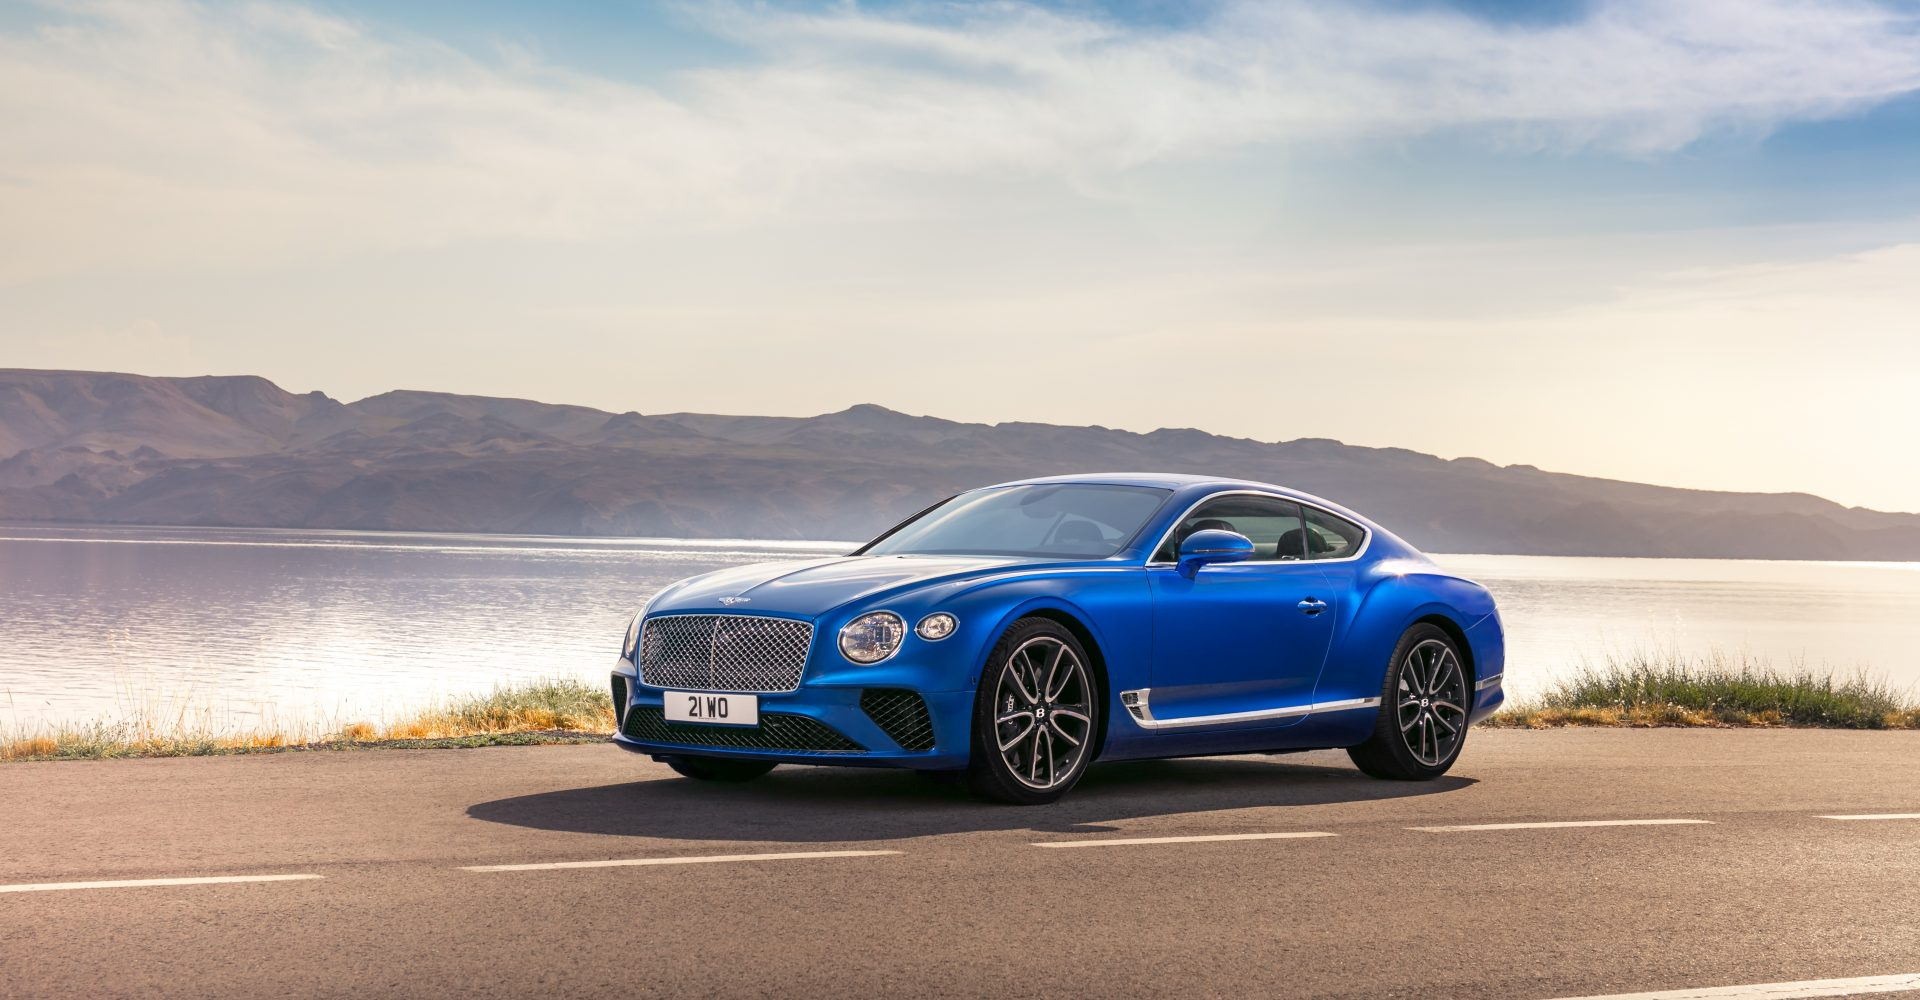 Bentley unveils the latest Continental GT – and it's a stunner